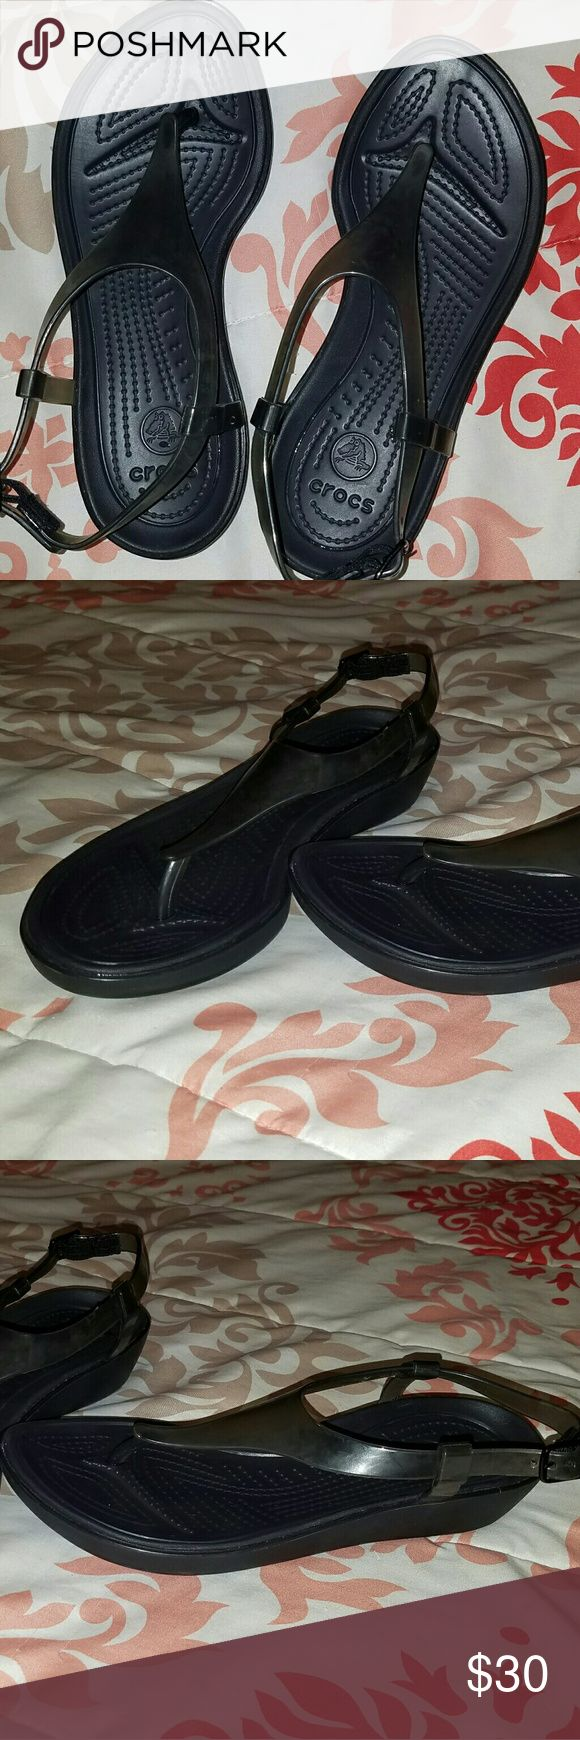 Womens Crocs! Size 6 Womens Crocs size 6 Worn once! EUC Black CROCS Shoes